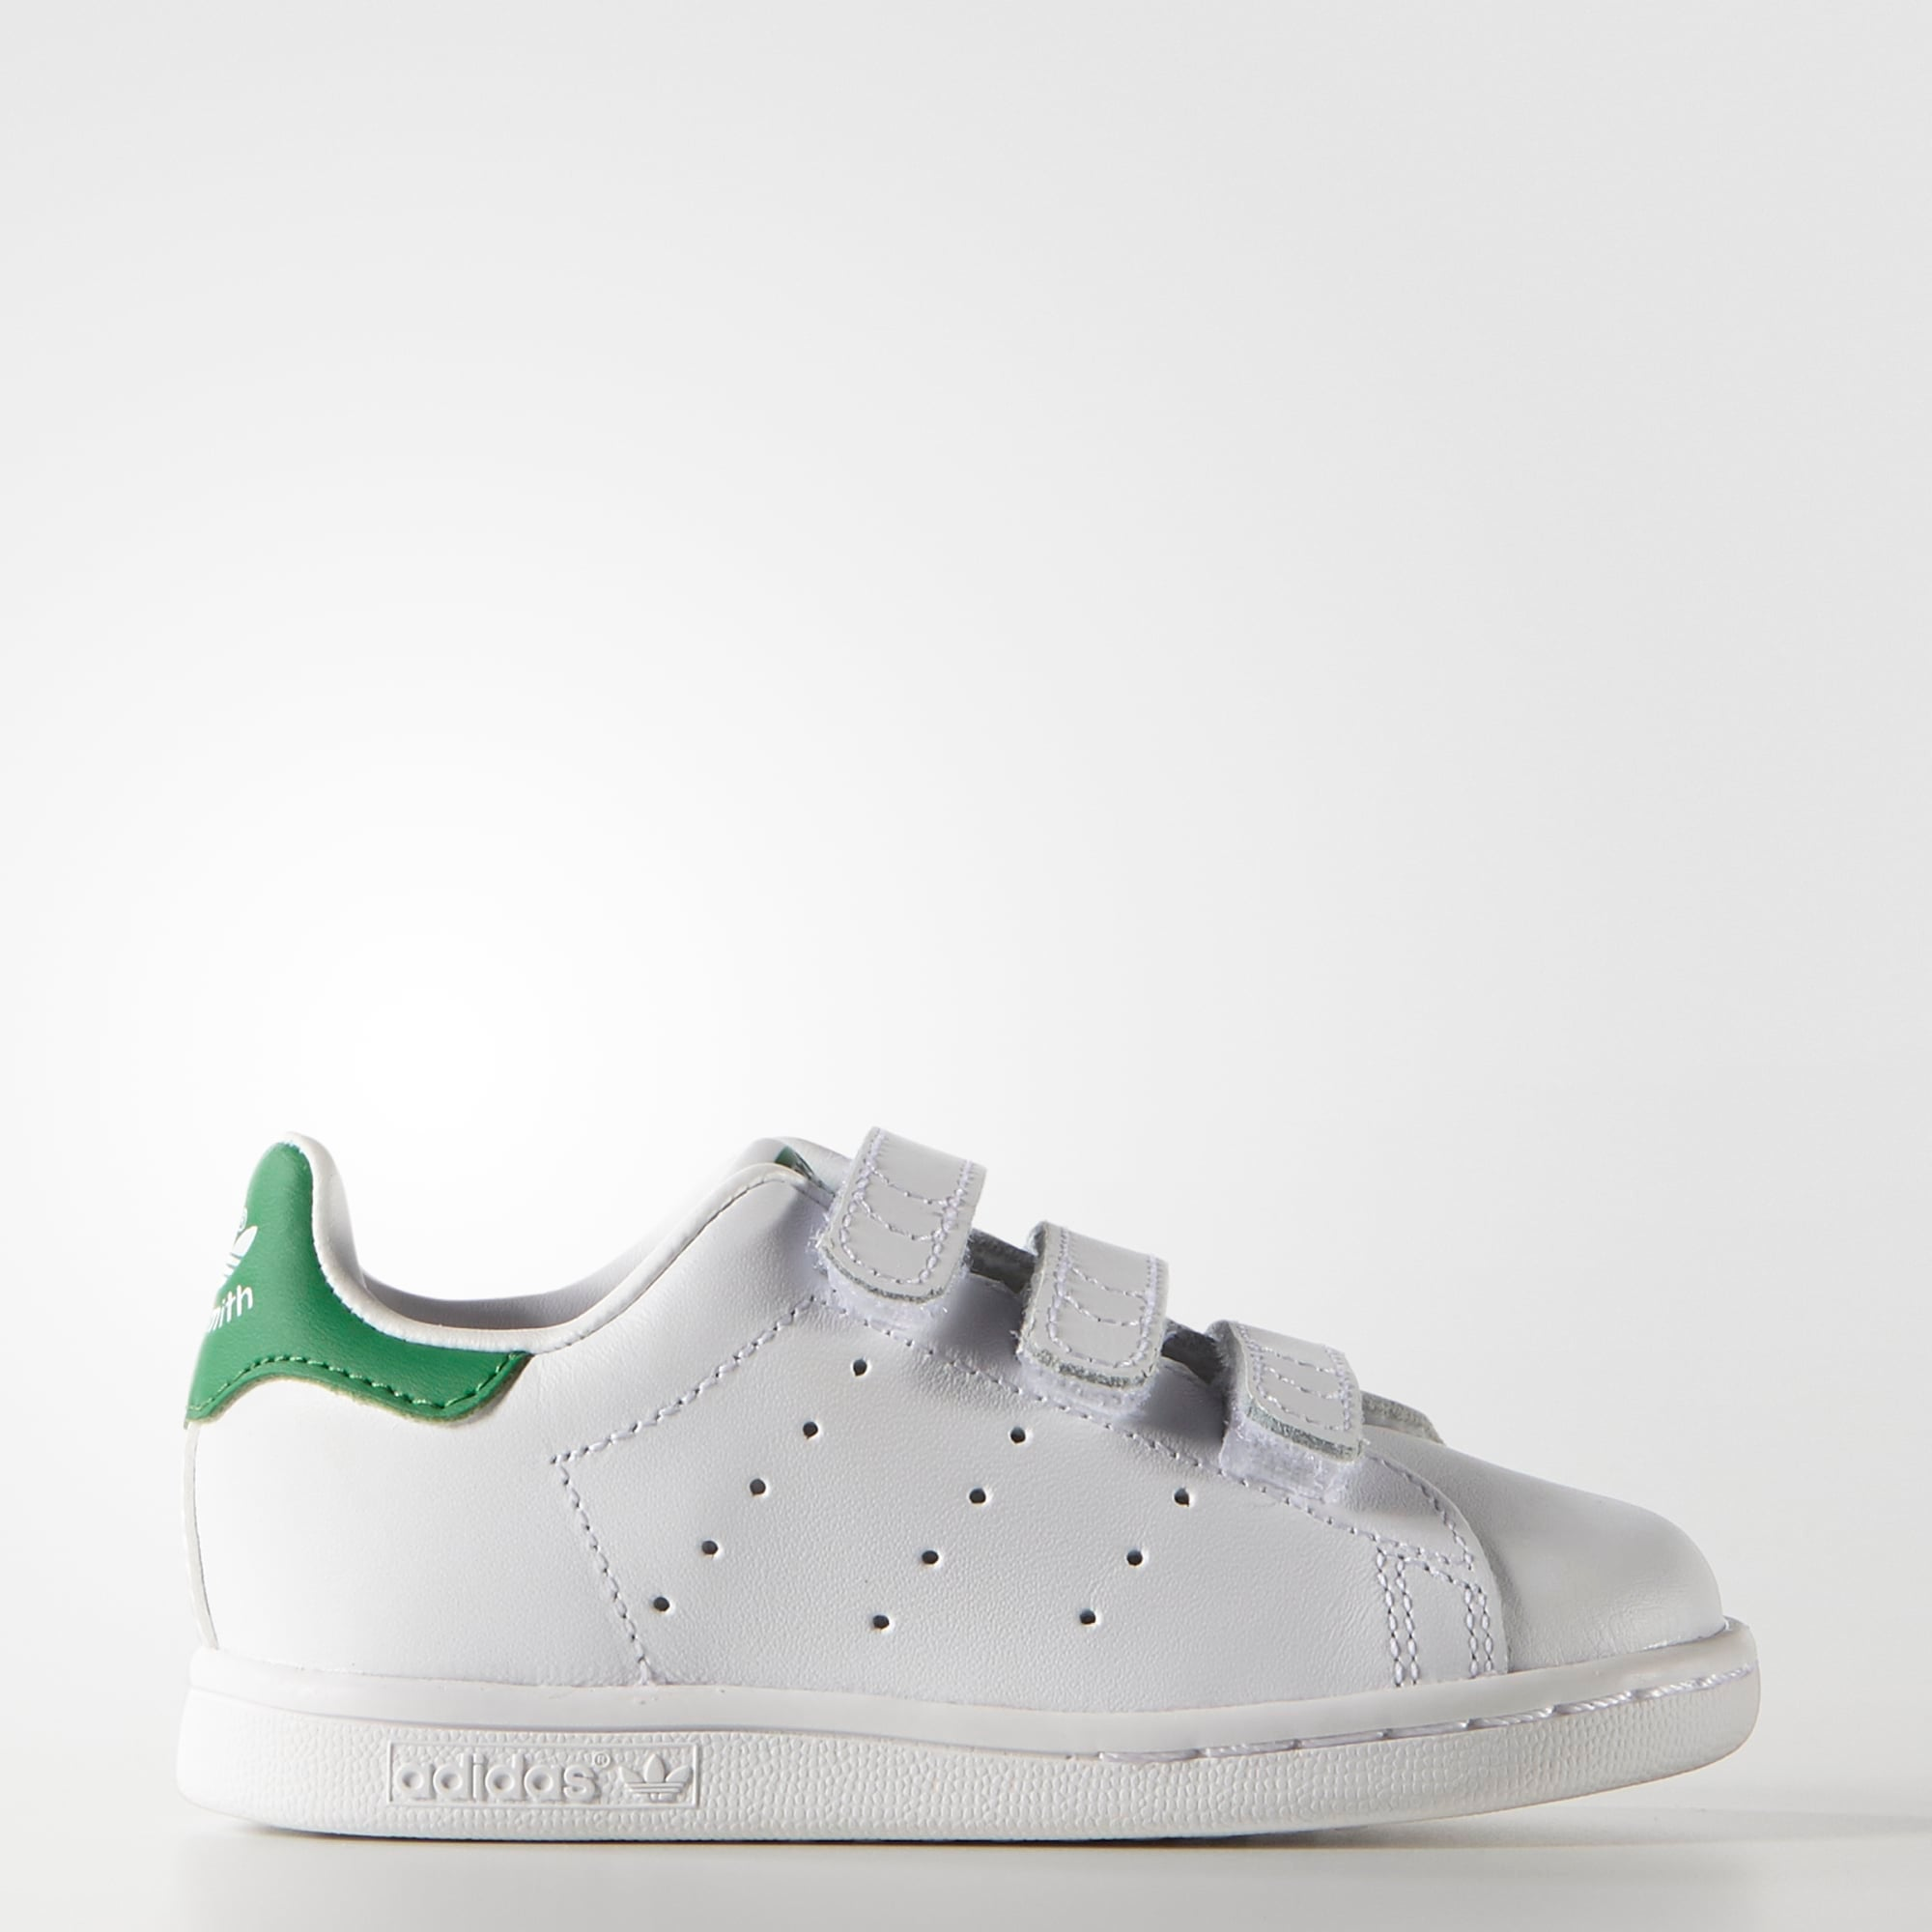 uk availability 4f001 0acba adidas Stan Smith Velcro Shoes White M20609 | Chicago City ...